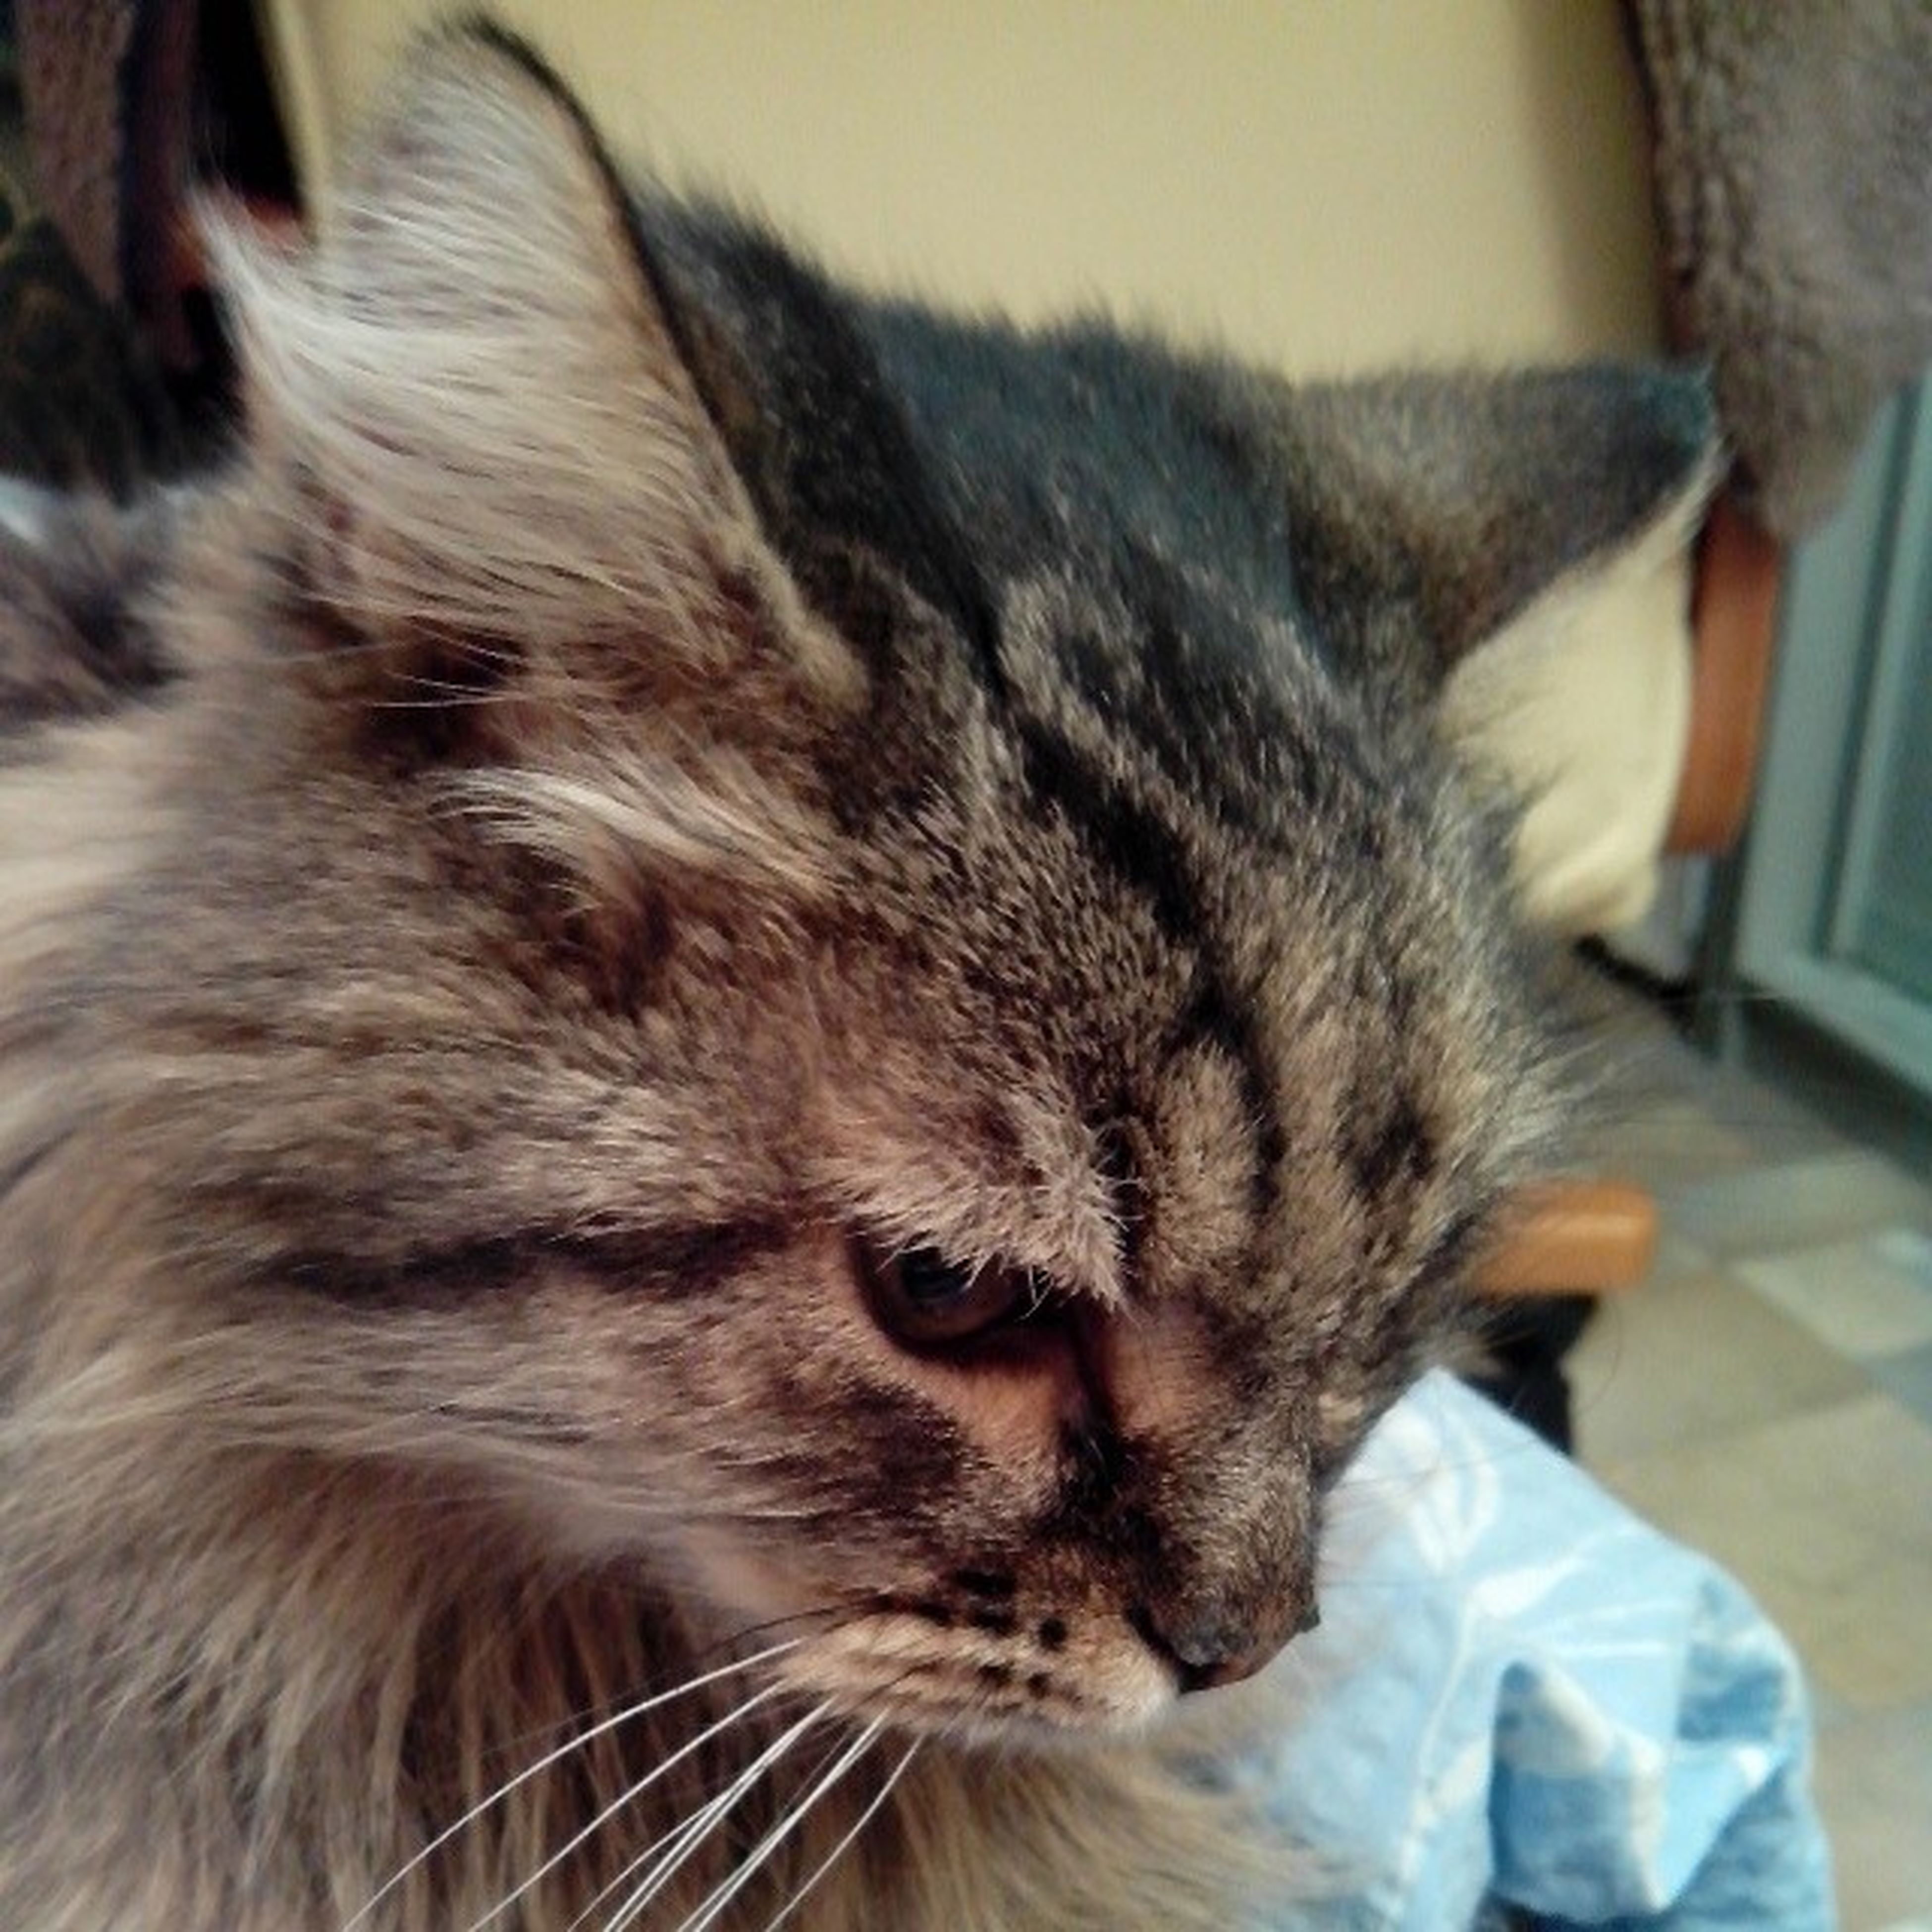 domestic cat, cat, pets, domestic animals, indoors, one animal, feline, animal themes, mammal, whisker, relaxation, close-up, home interior, animal head, resting, lying down, looking away, home, focus on foreground, bed